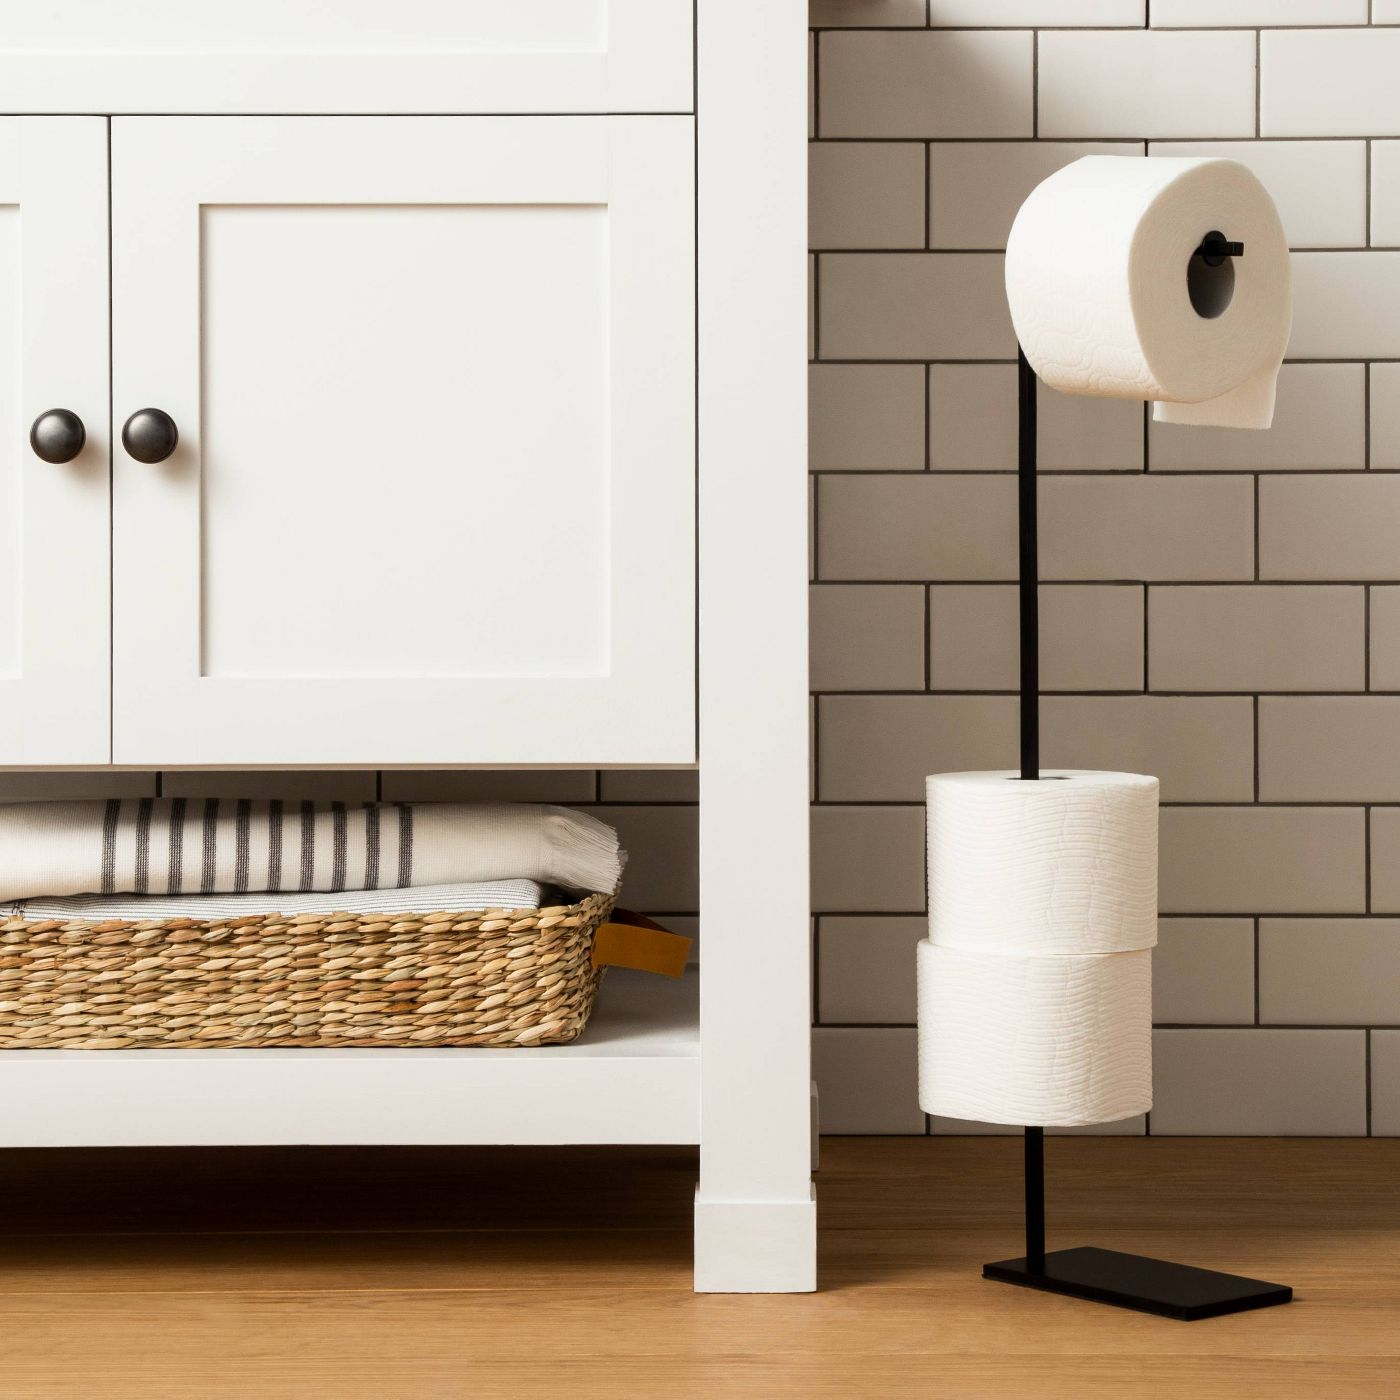 bathroom with a new toilet paper holder